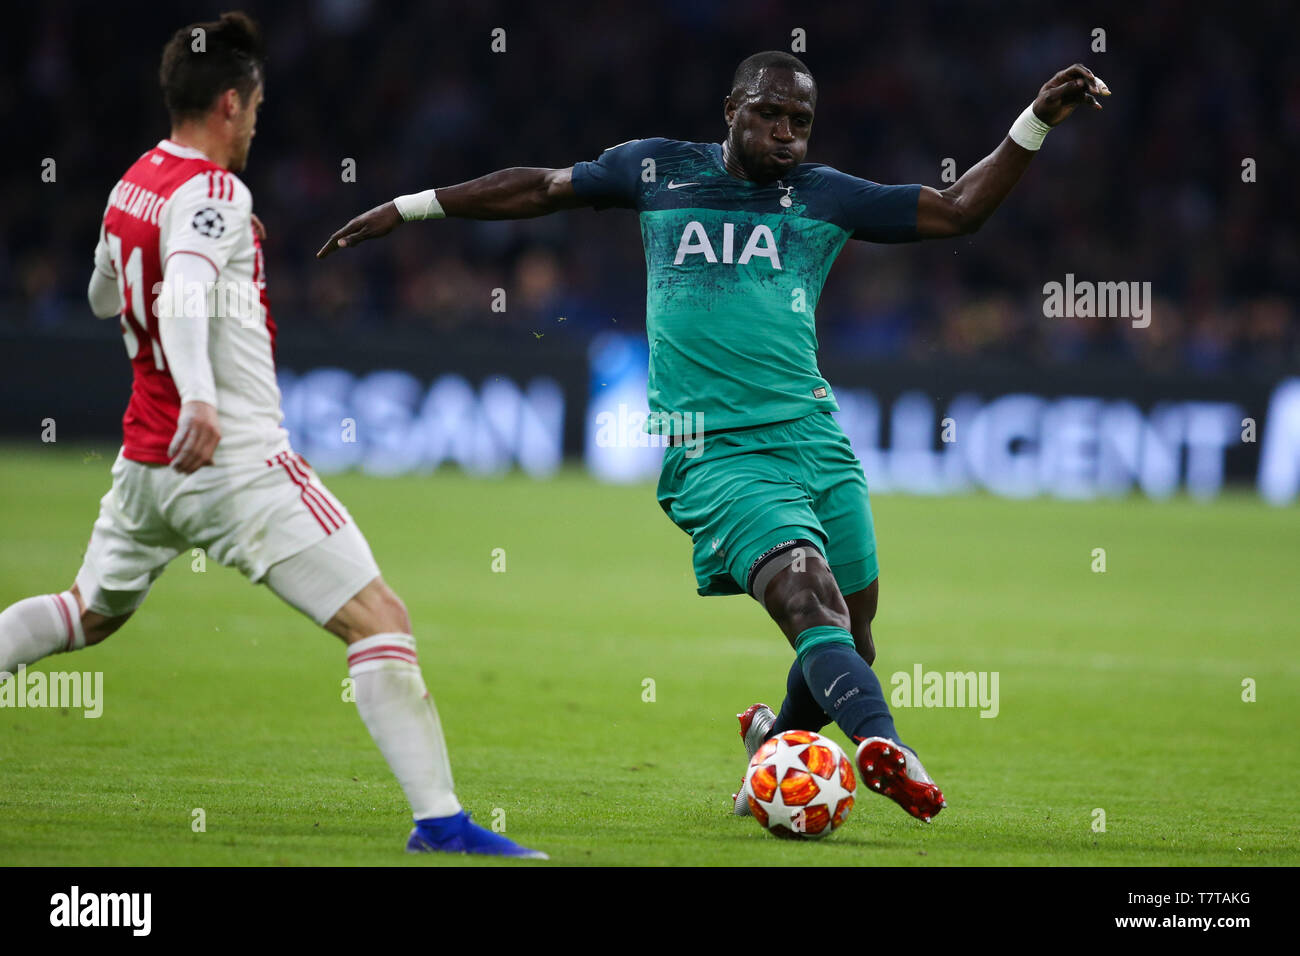 Amsterdam, Netherlands  8th May, 2019  Hotspur's Moussa Sissoko (R